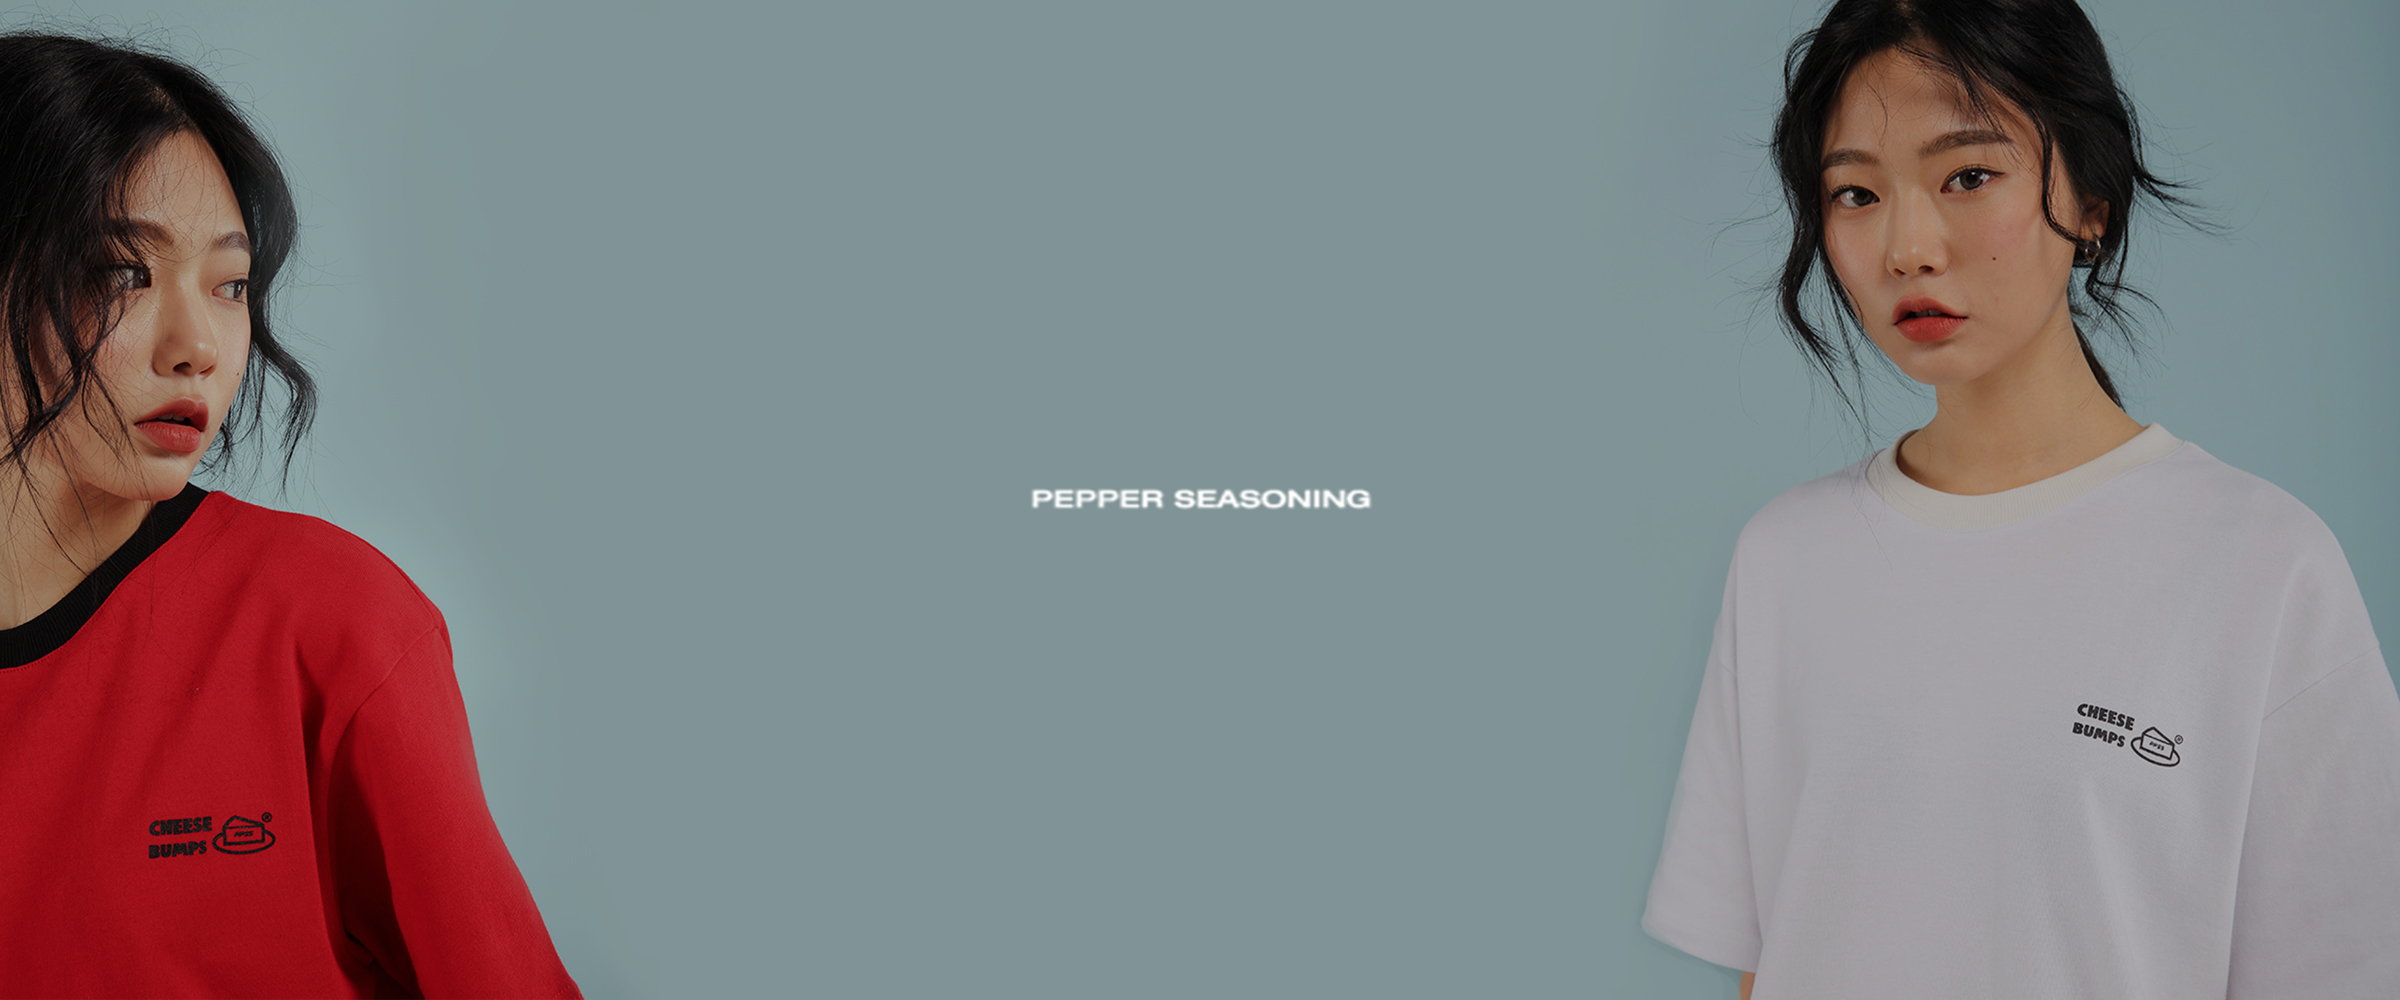 pepperseasoning.jpg